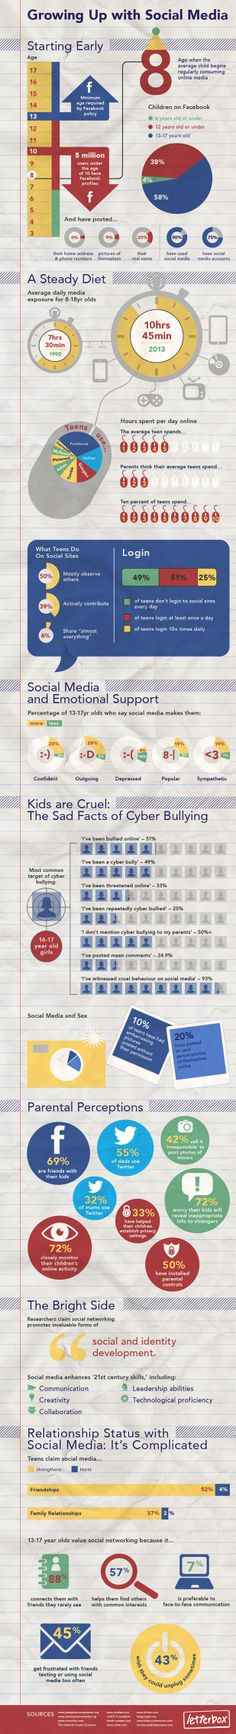 Growing Up with Social Media: Cyber Bullying, Relationships and Support